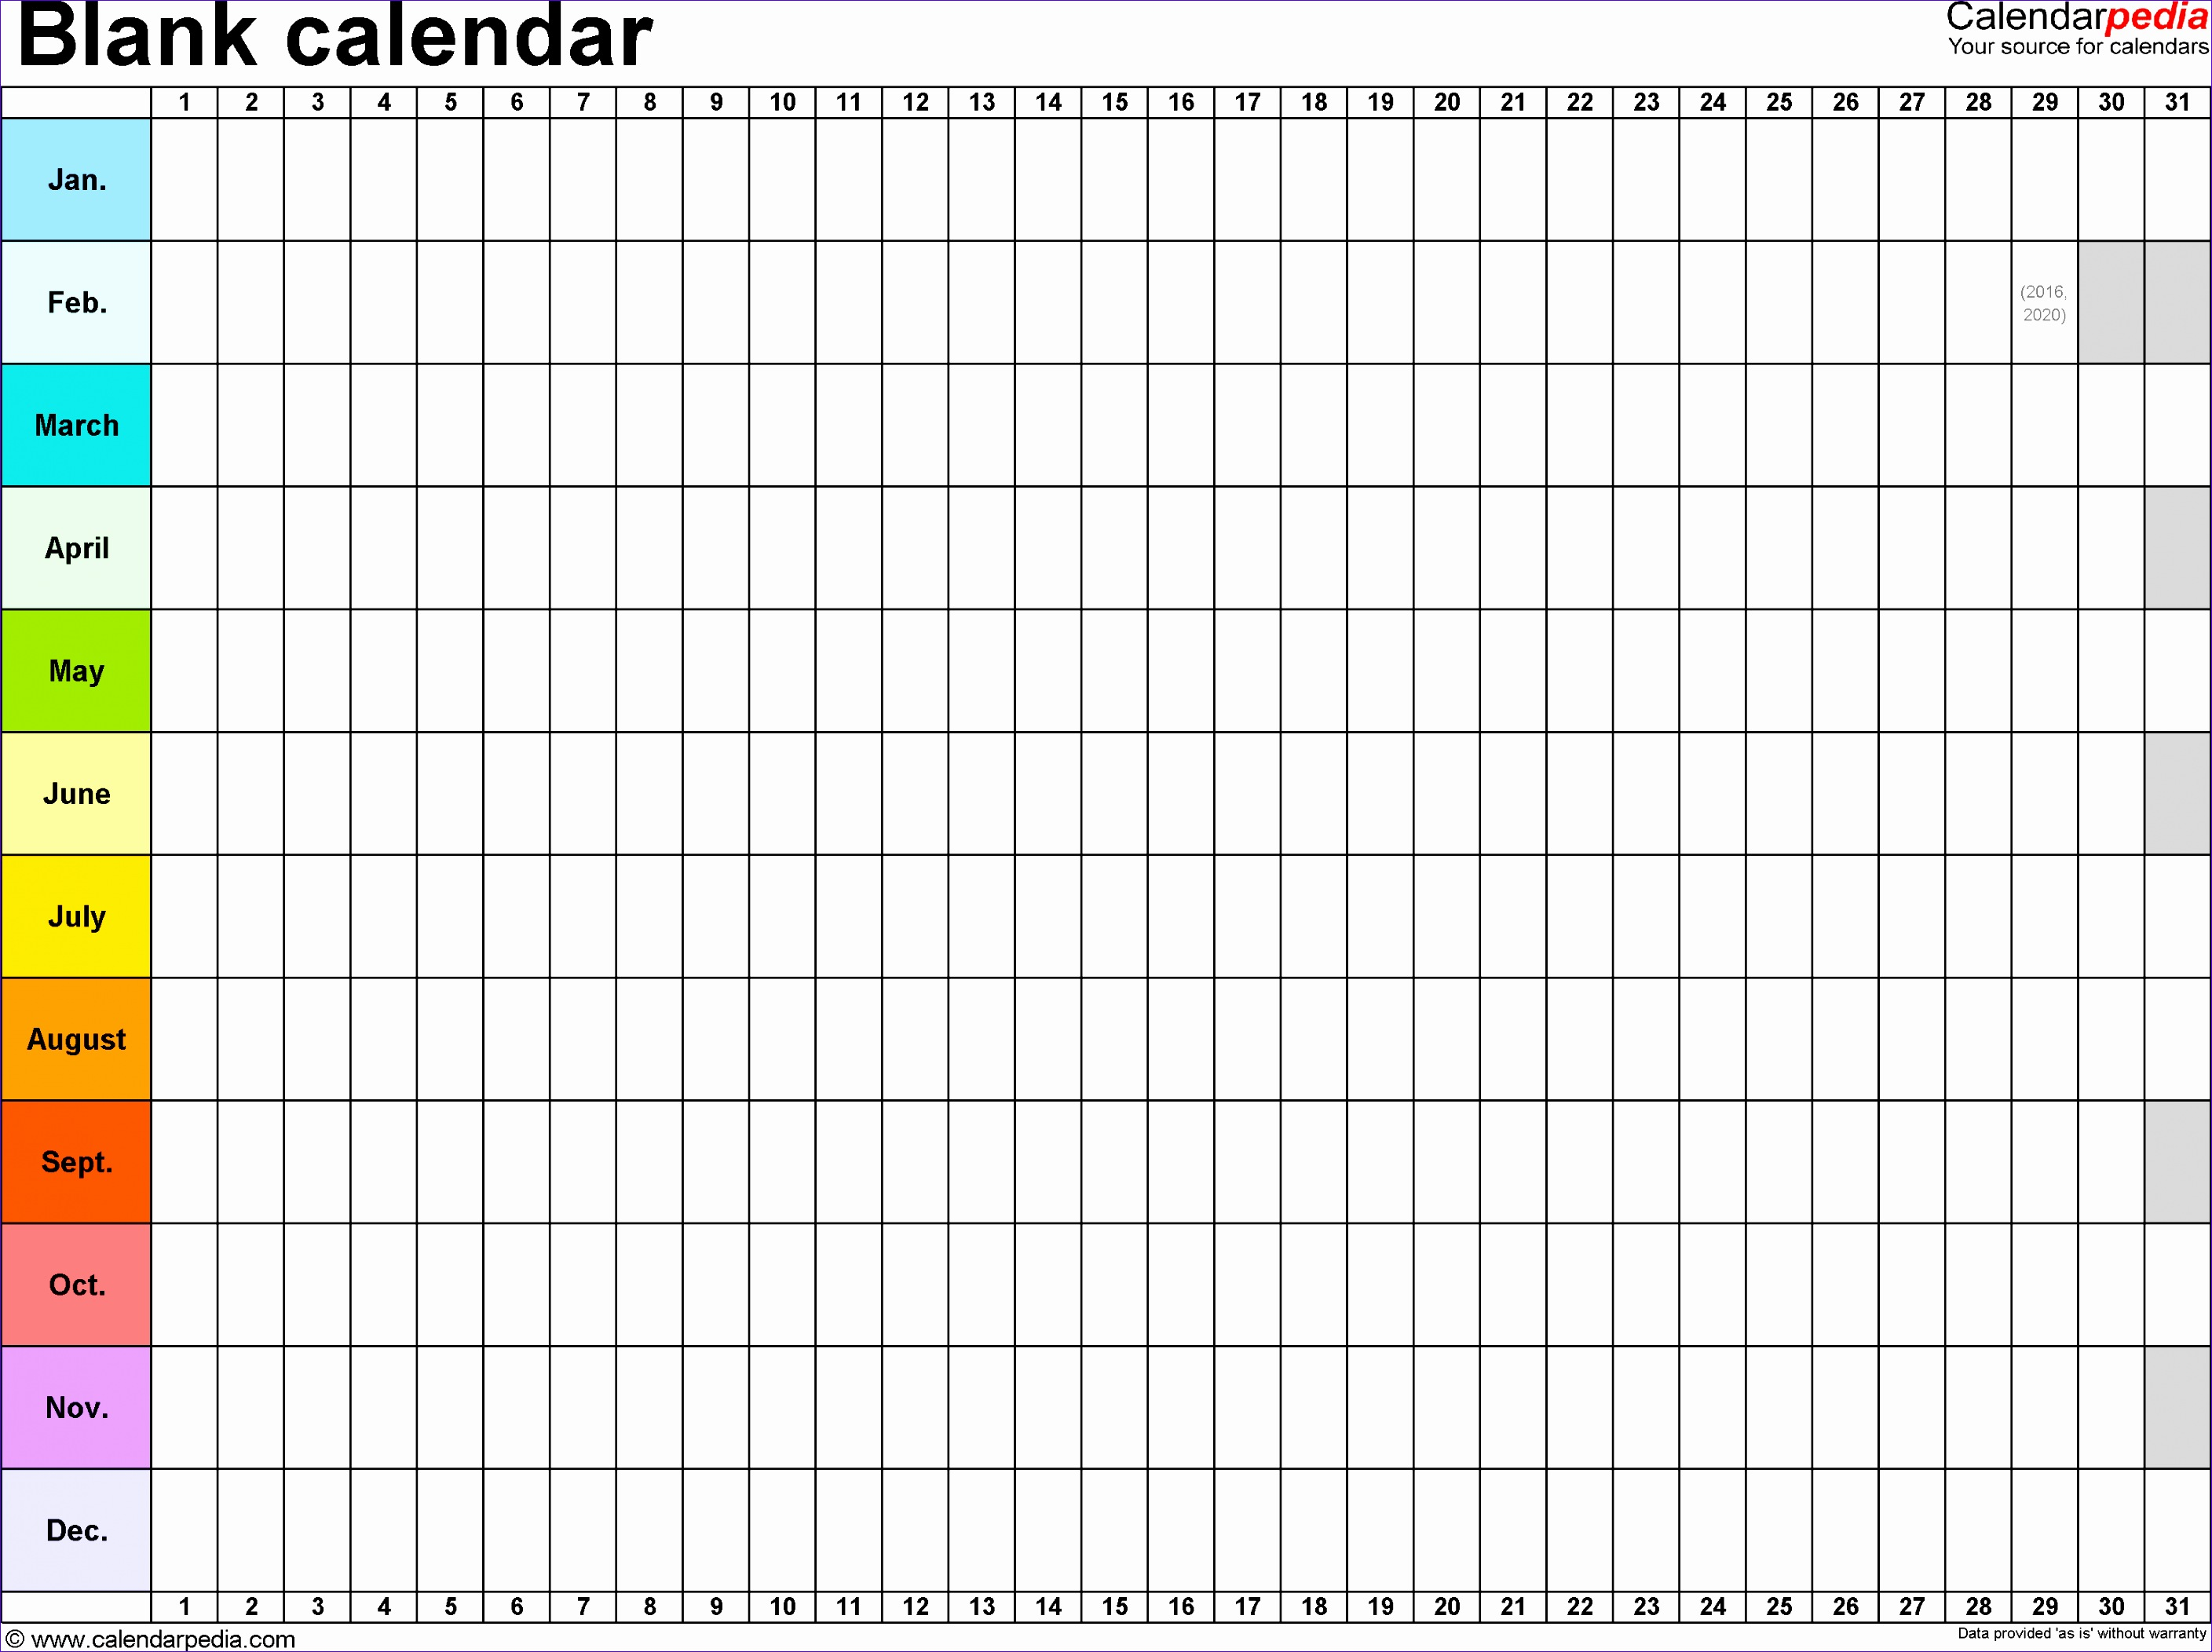 Raci Model Template Excel Zfwdo Lovely Calendar Templ Template